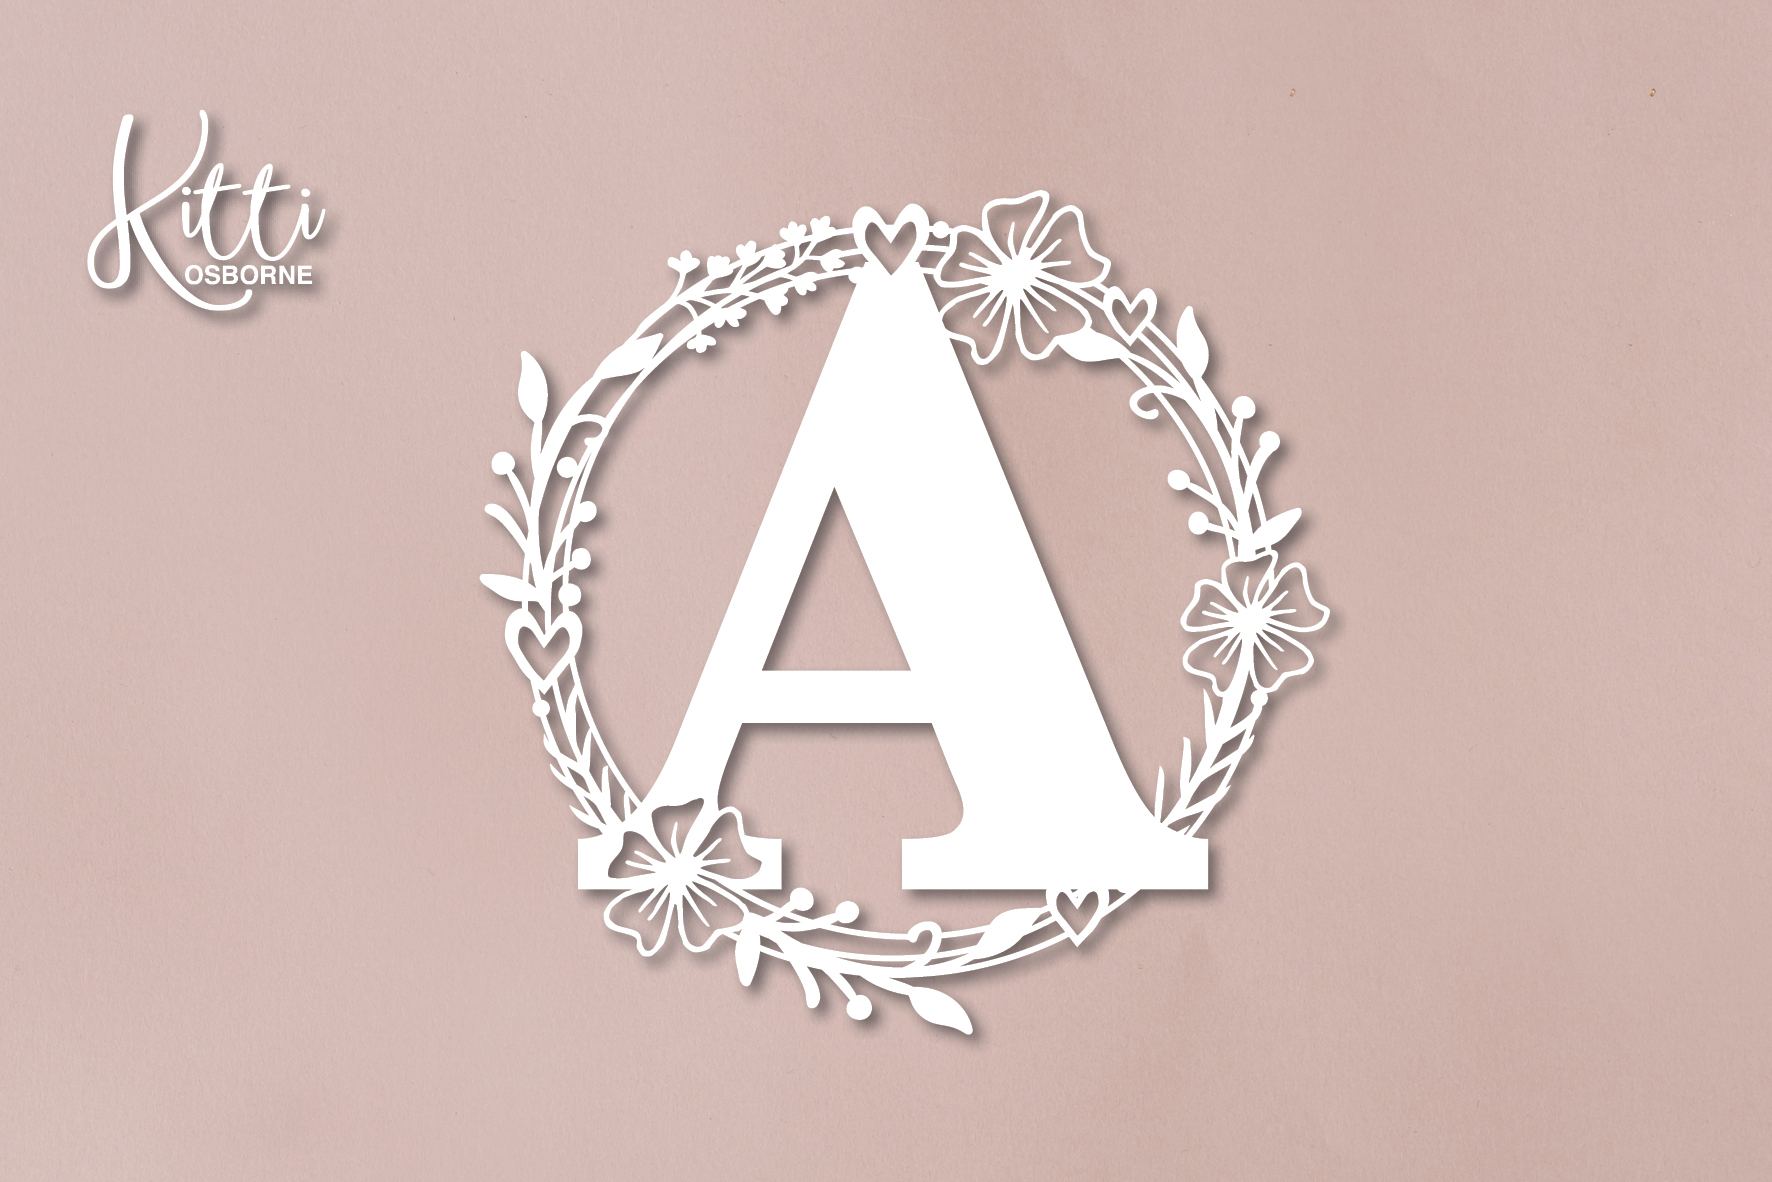 Flower Wreath Monograms A-Z example image 2